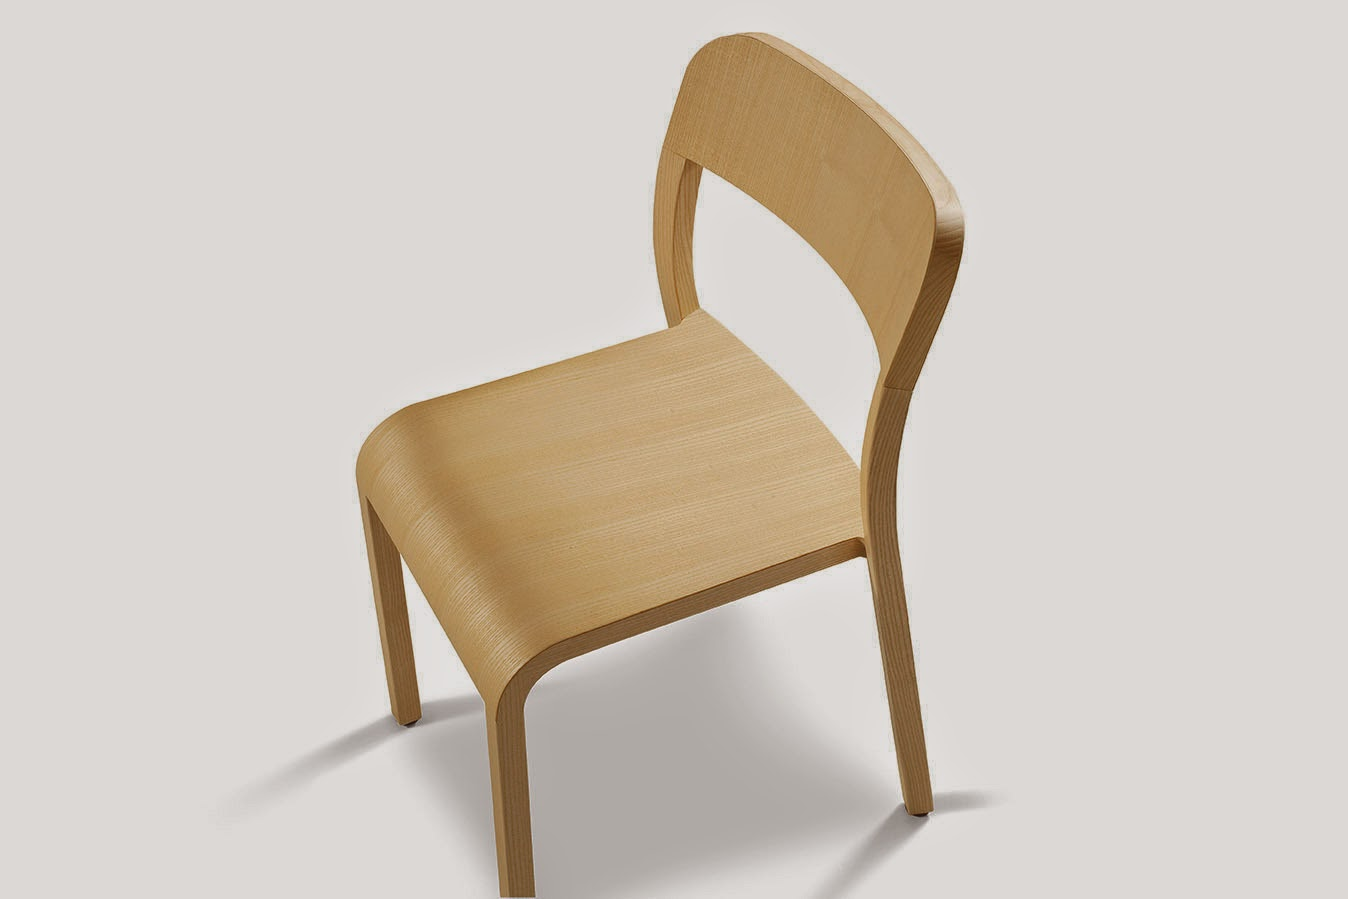 Natural ash-wooden lacquered Blocco chair